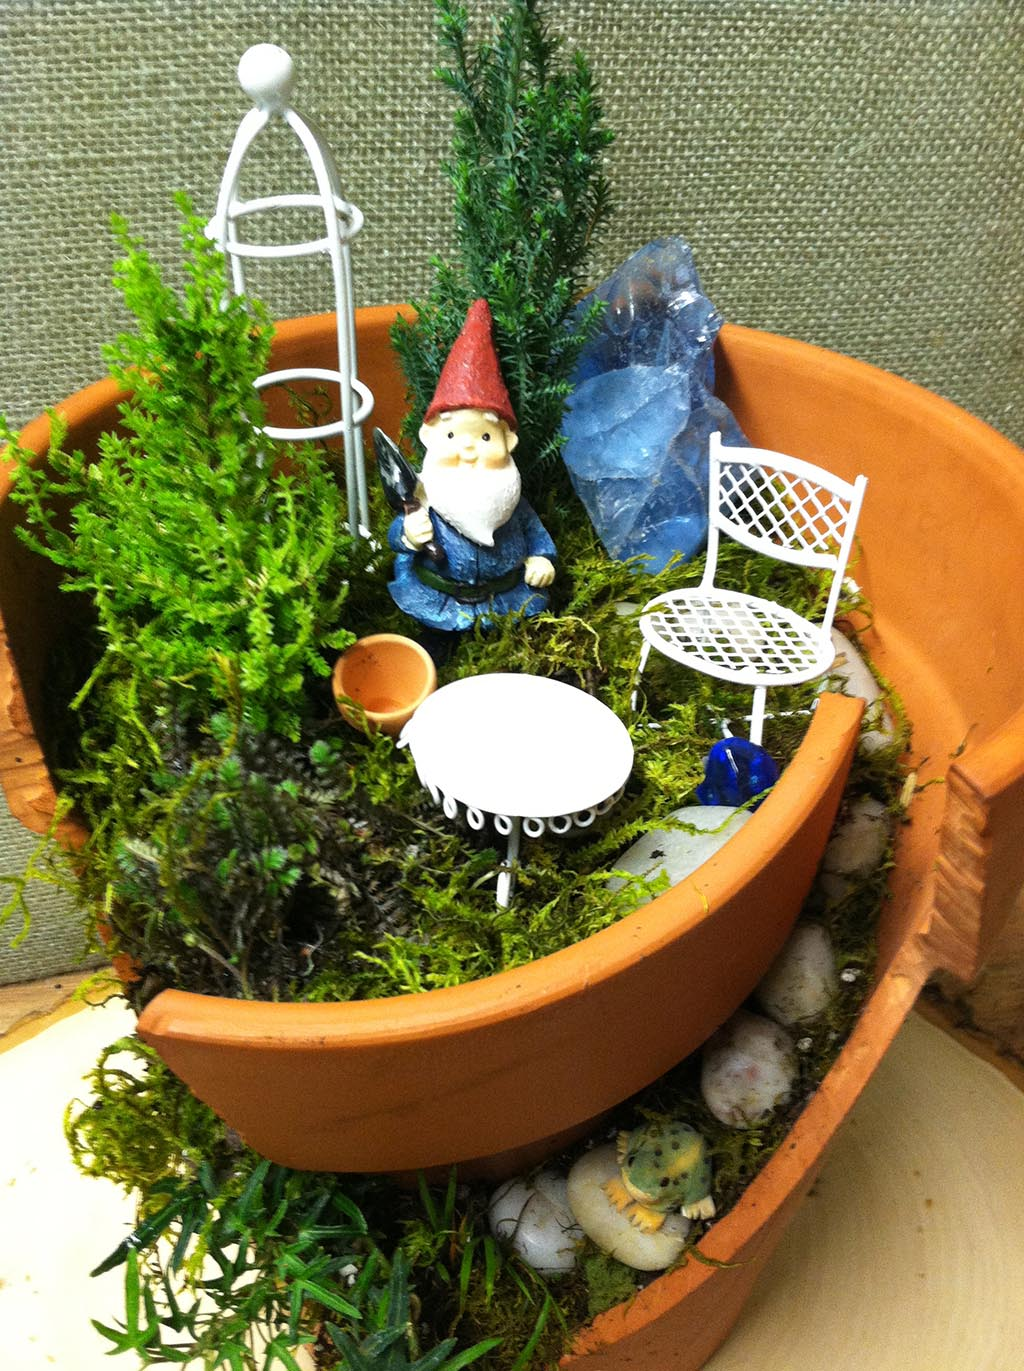 Planting a Herb Garden in Pots